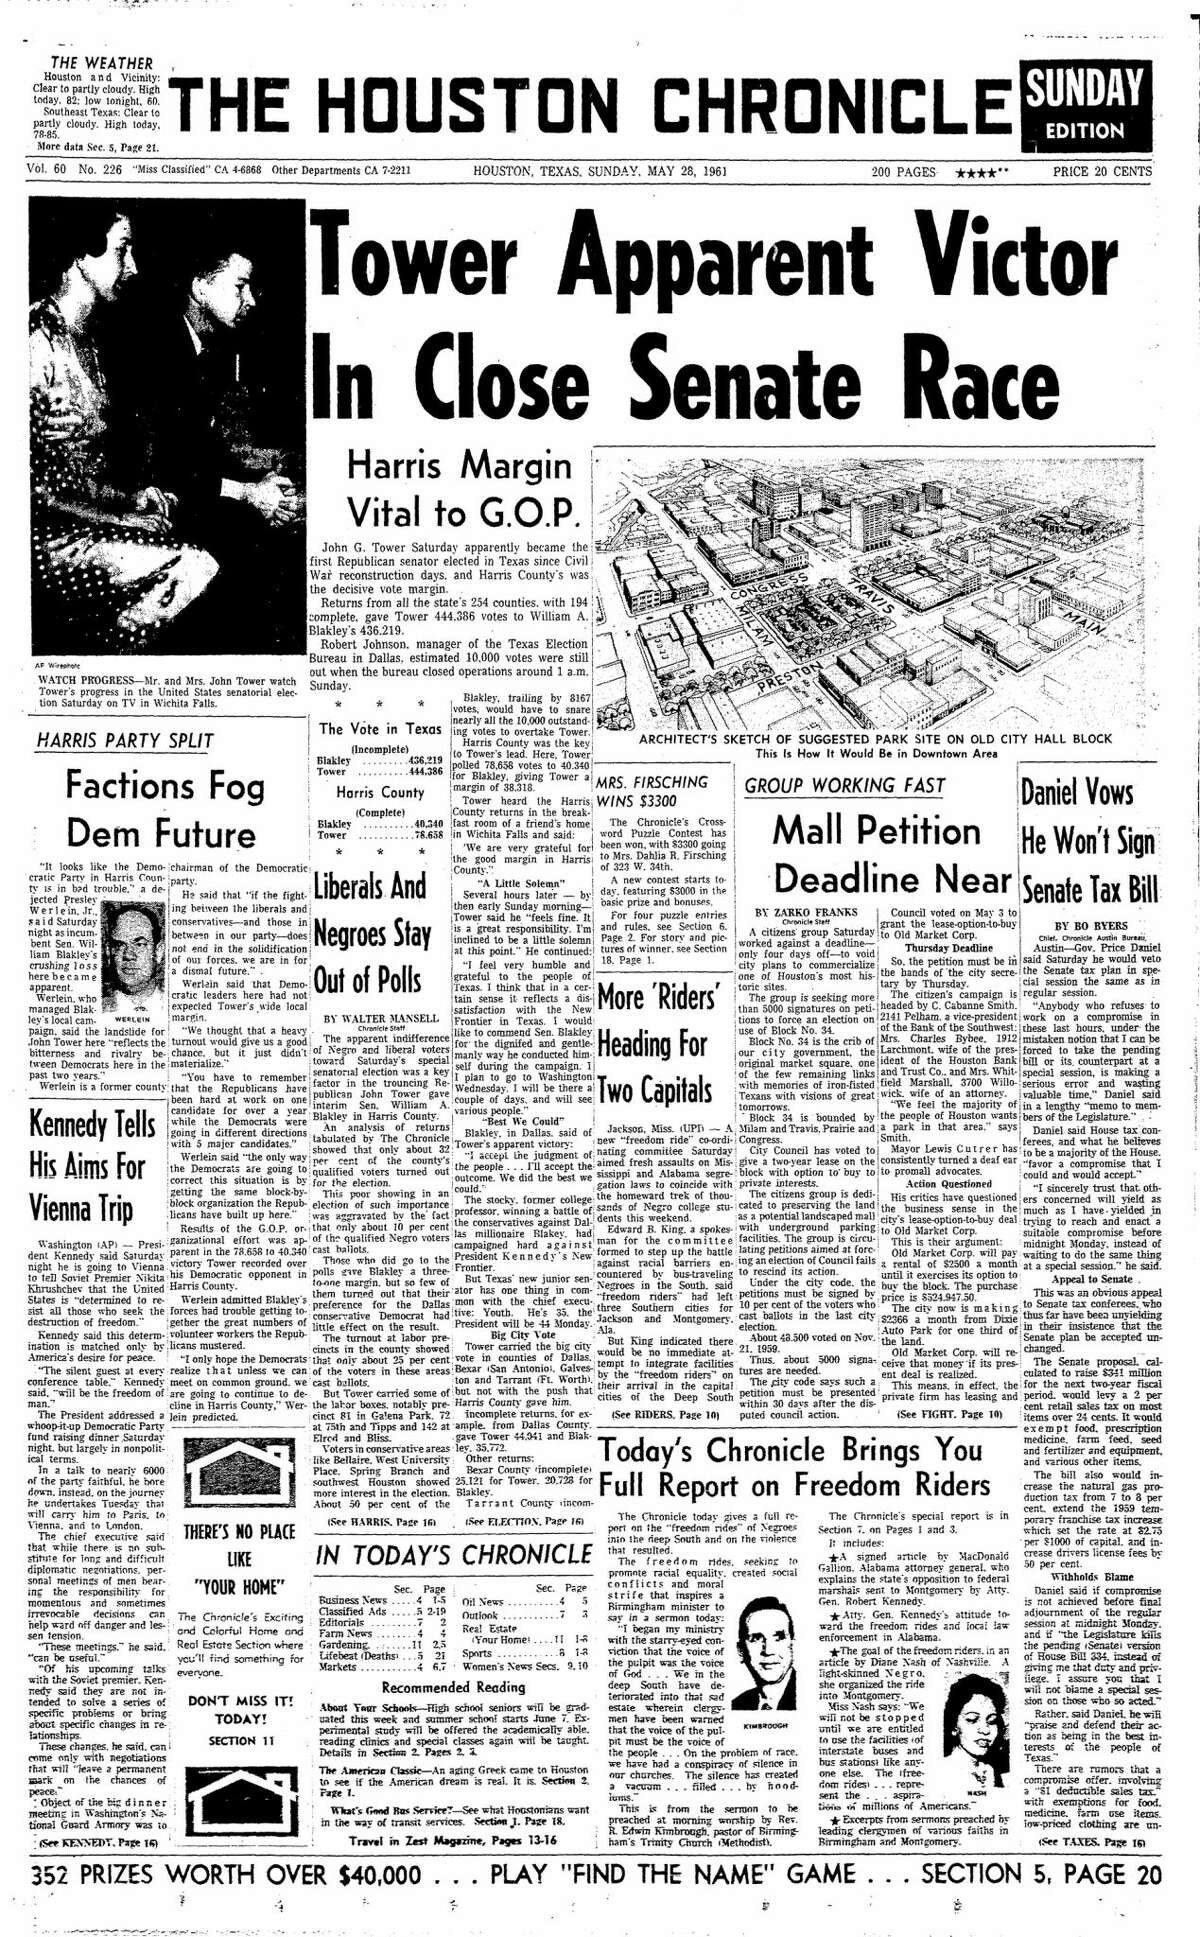 Houston Chronicle front page for May 28, 1961.